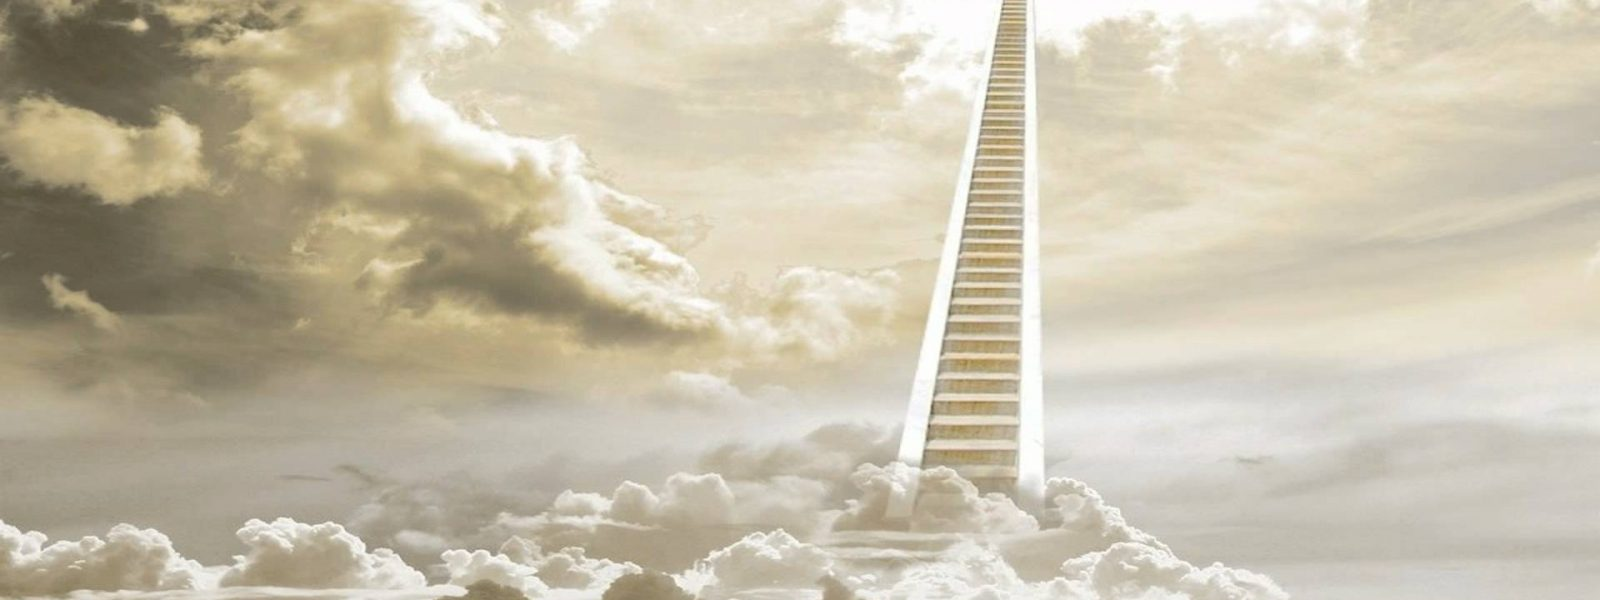 God Live Wallpaper Hd Stairway To Heaven Grow On The Go With Donna And Kevann